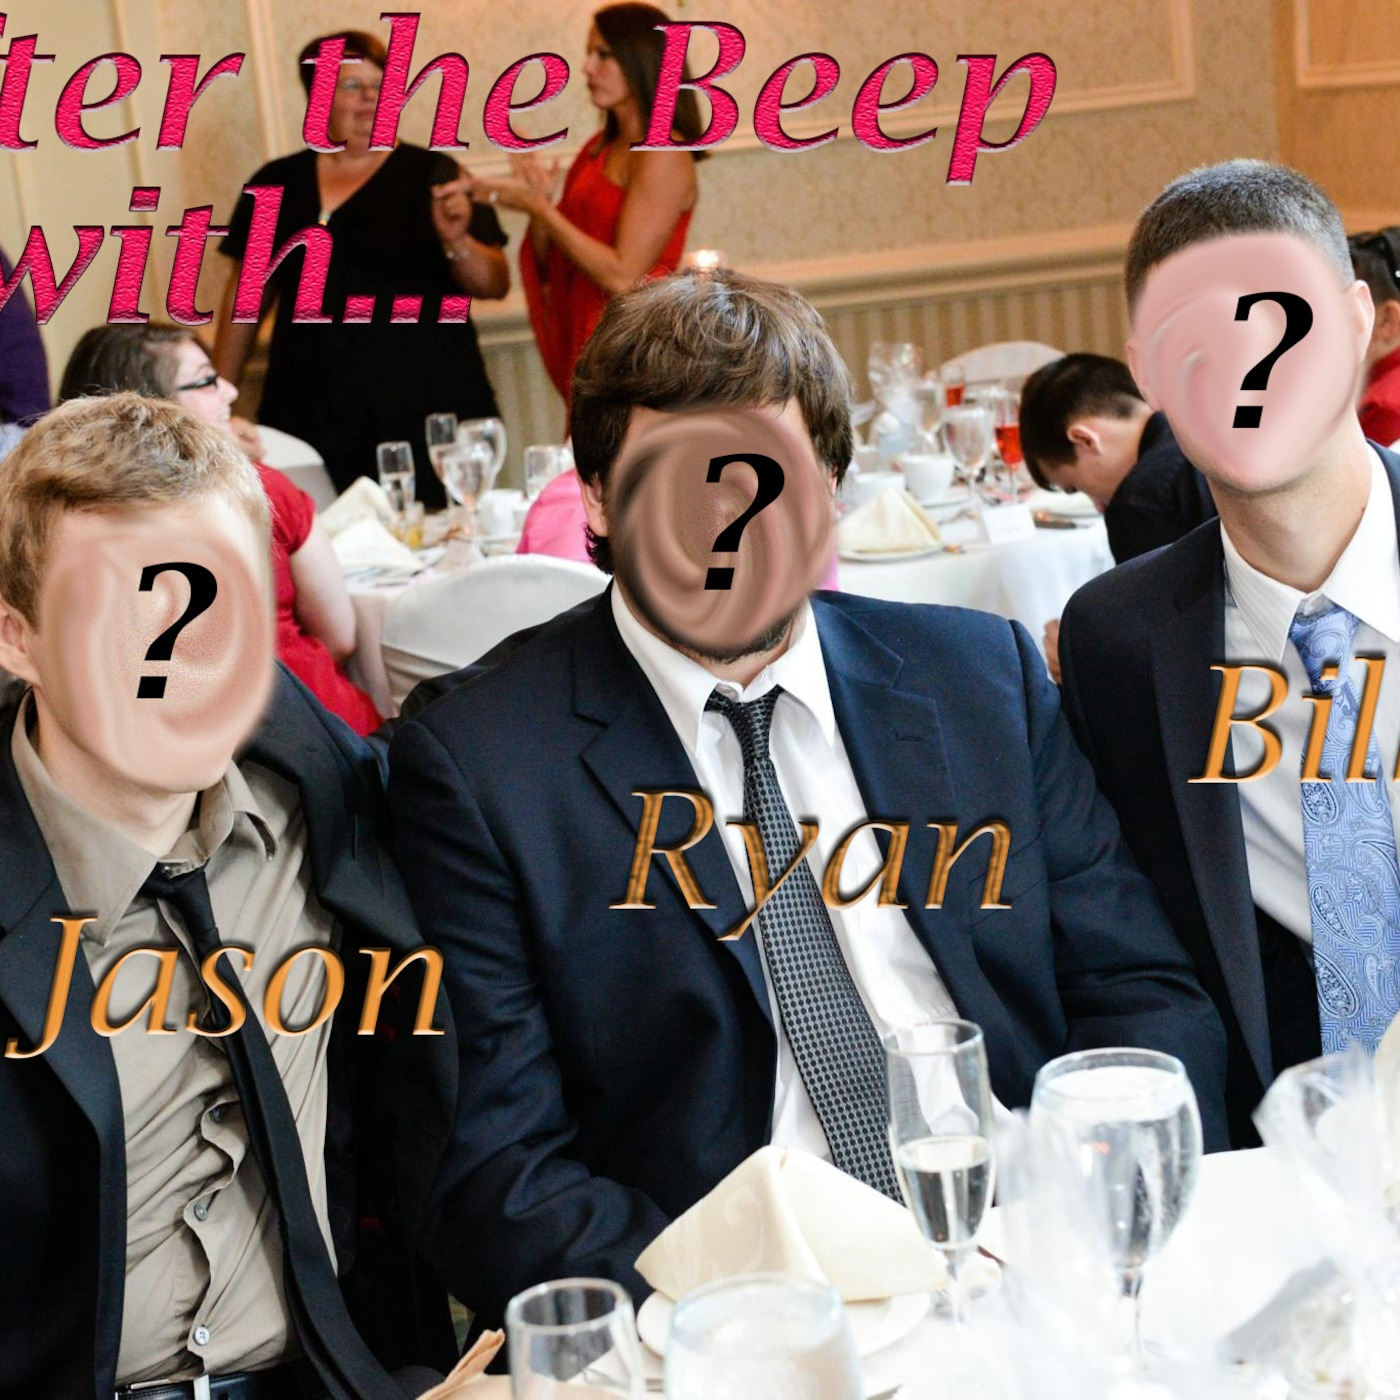 After the Beep